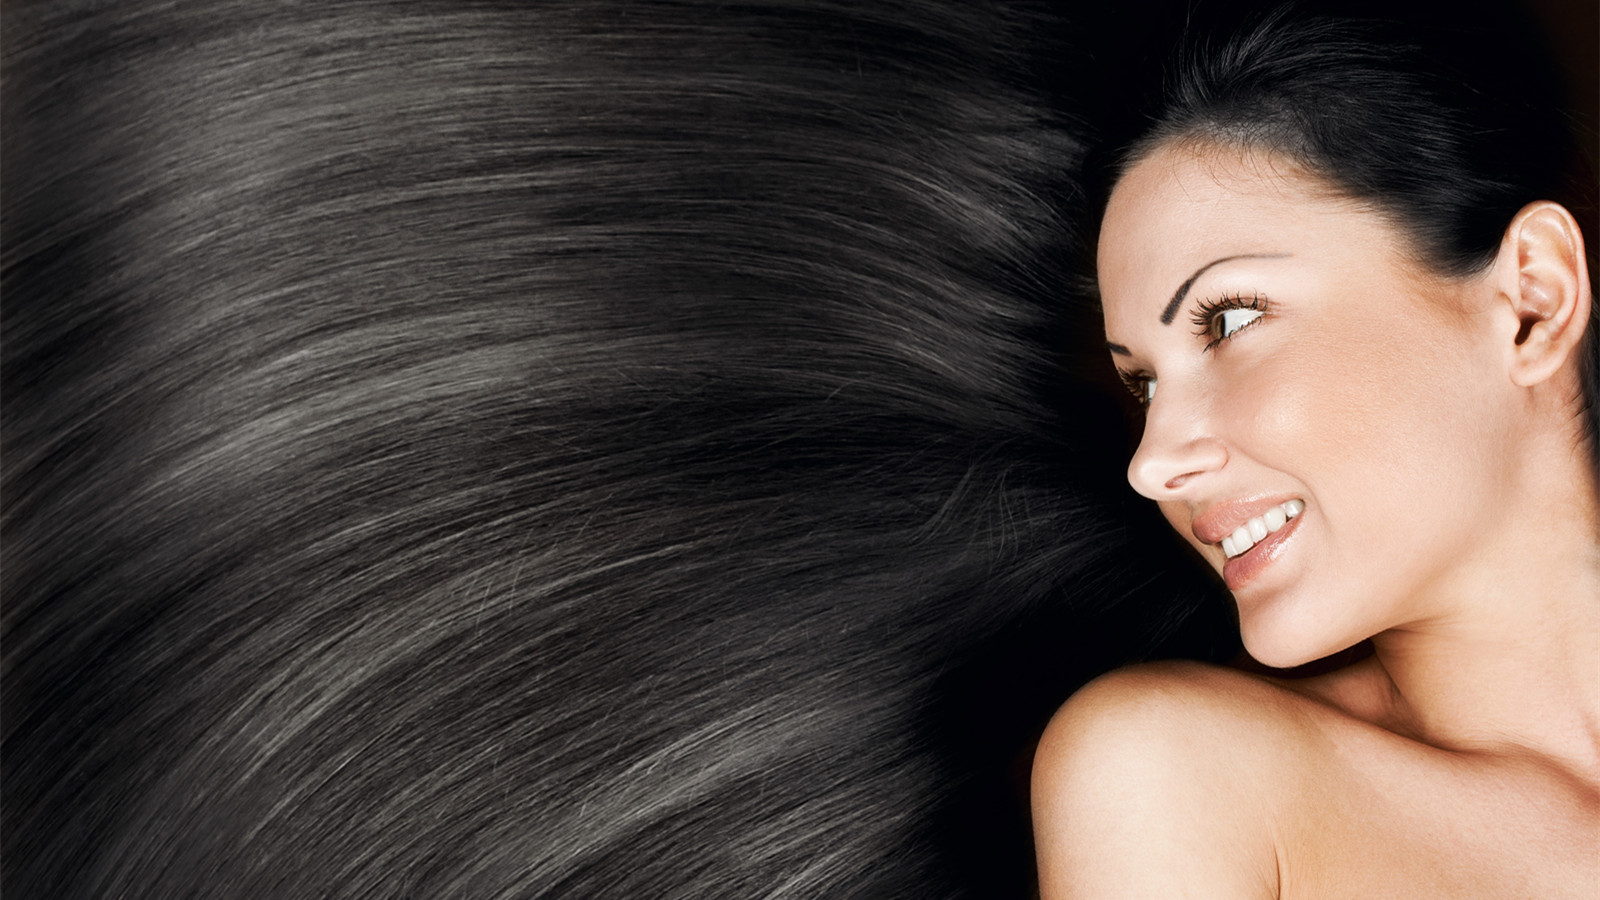 4 Easy Tricks To Make Your Hair Super Silky